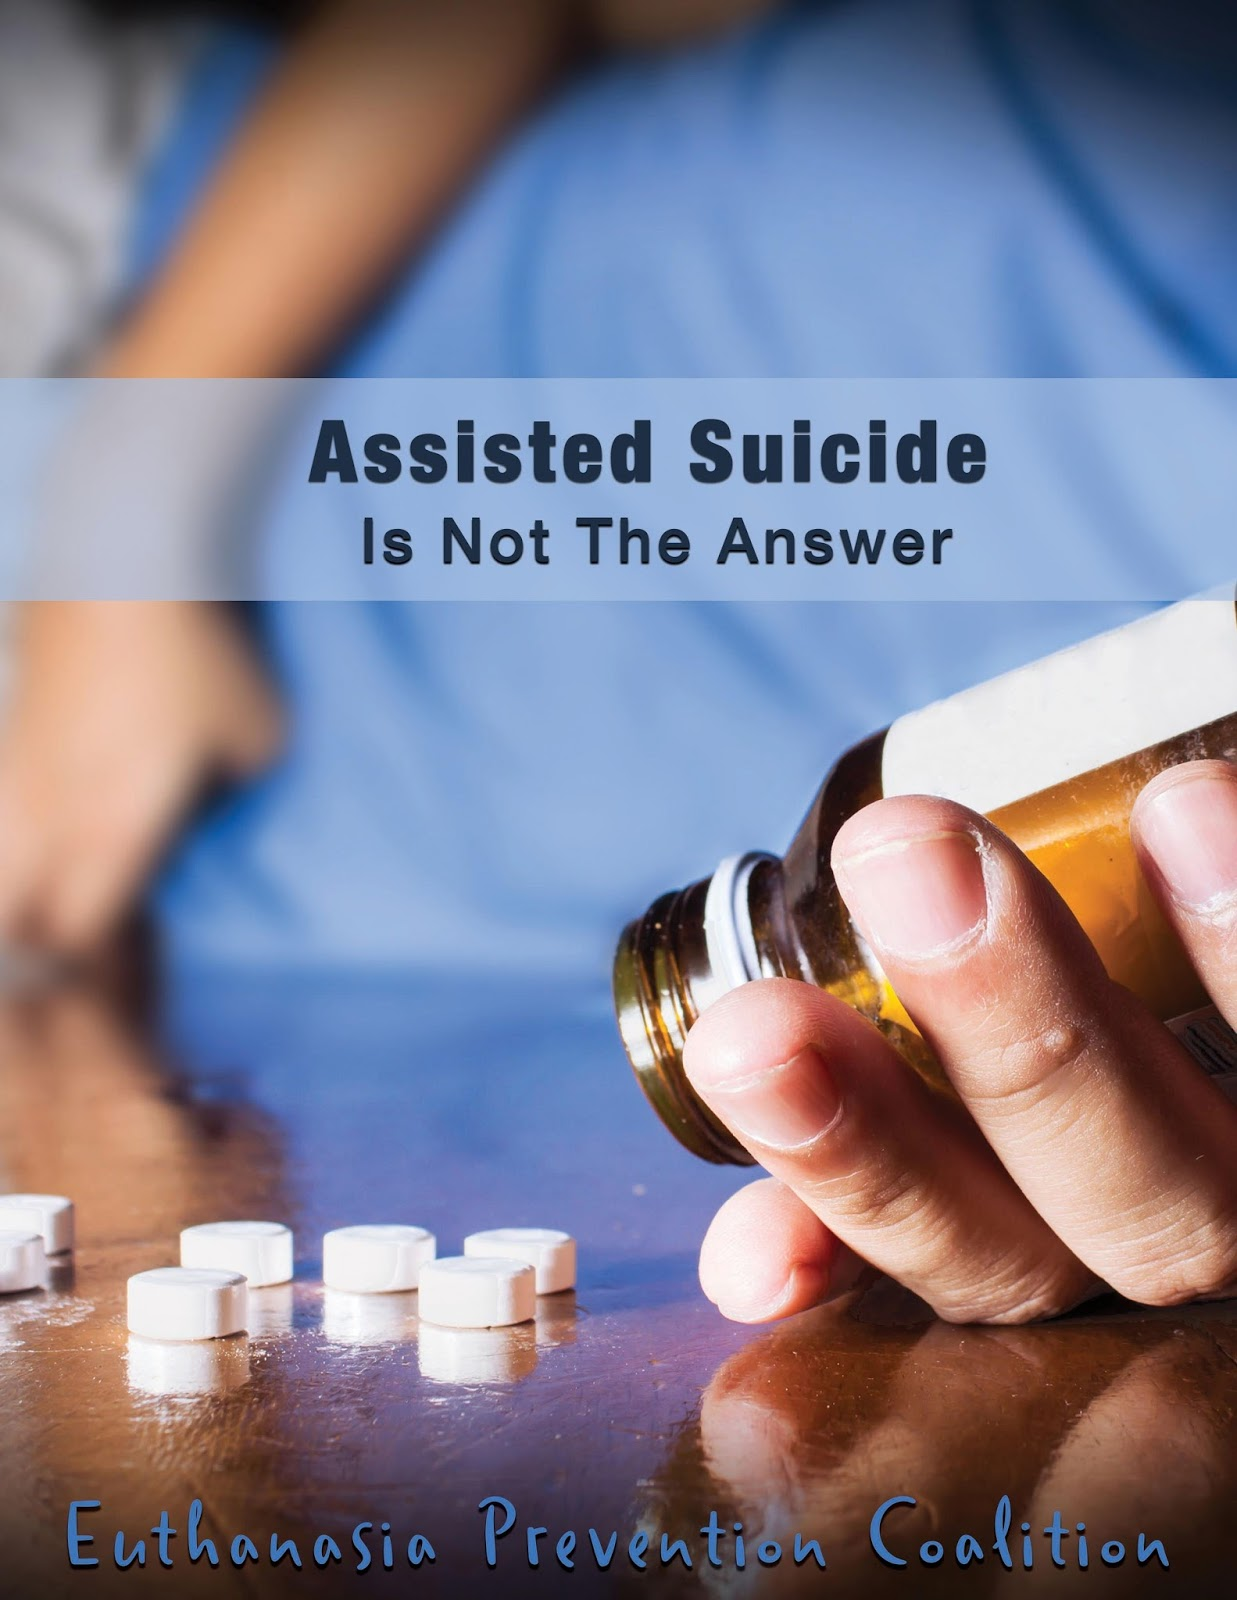 an analysis of the issue of assisted suicide A moral analysis of physician assisted suicide it is often difficult to judge someone until in regards to the issue of physician-assisted suicide.